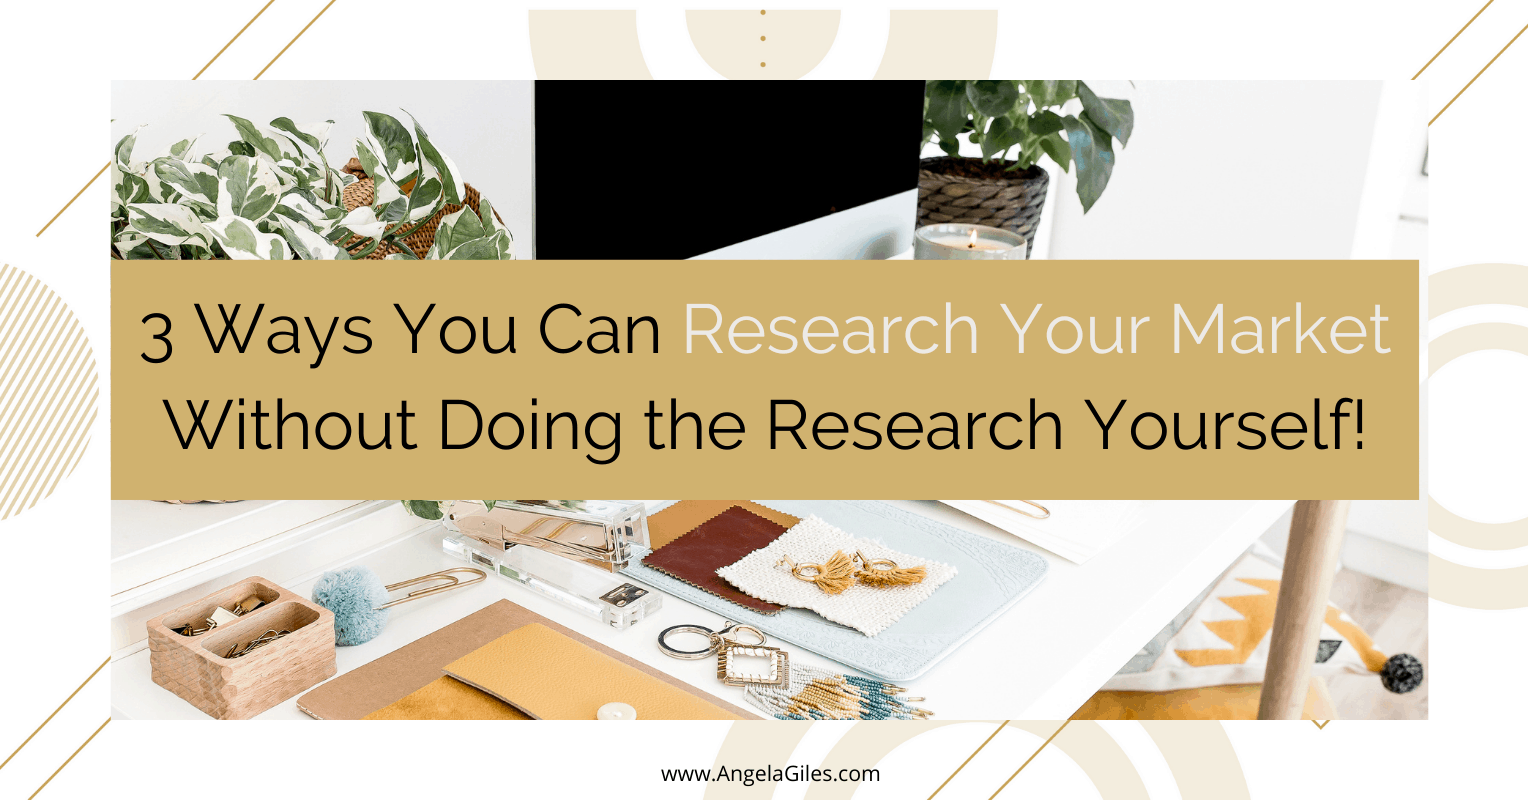 3 Ways You Can Research Your Market Without Doing the Research Yourself!